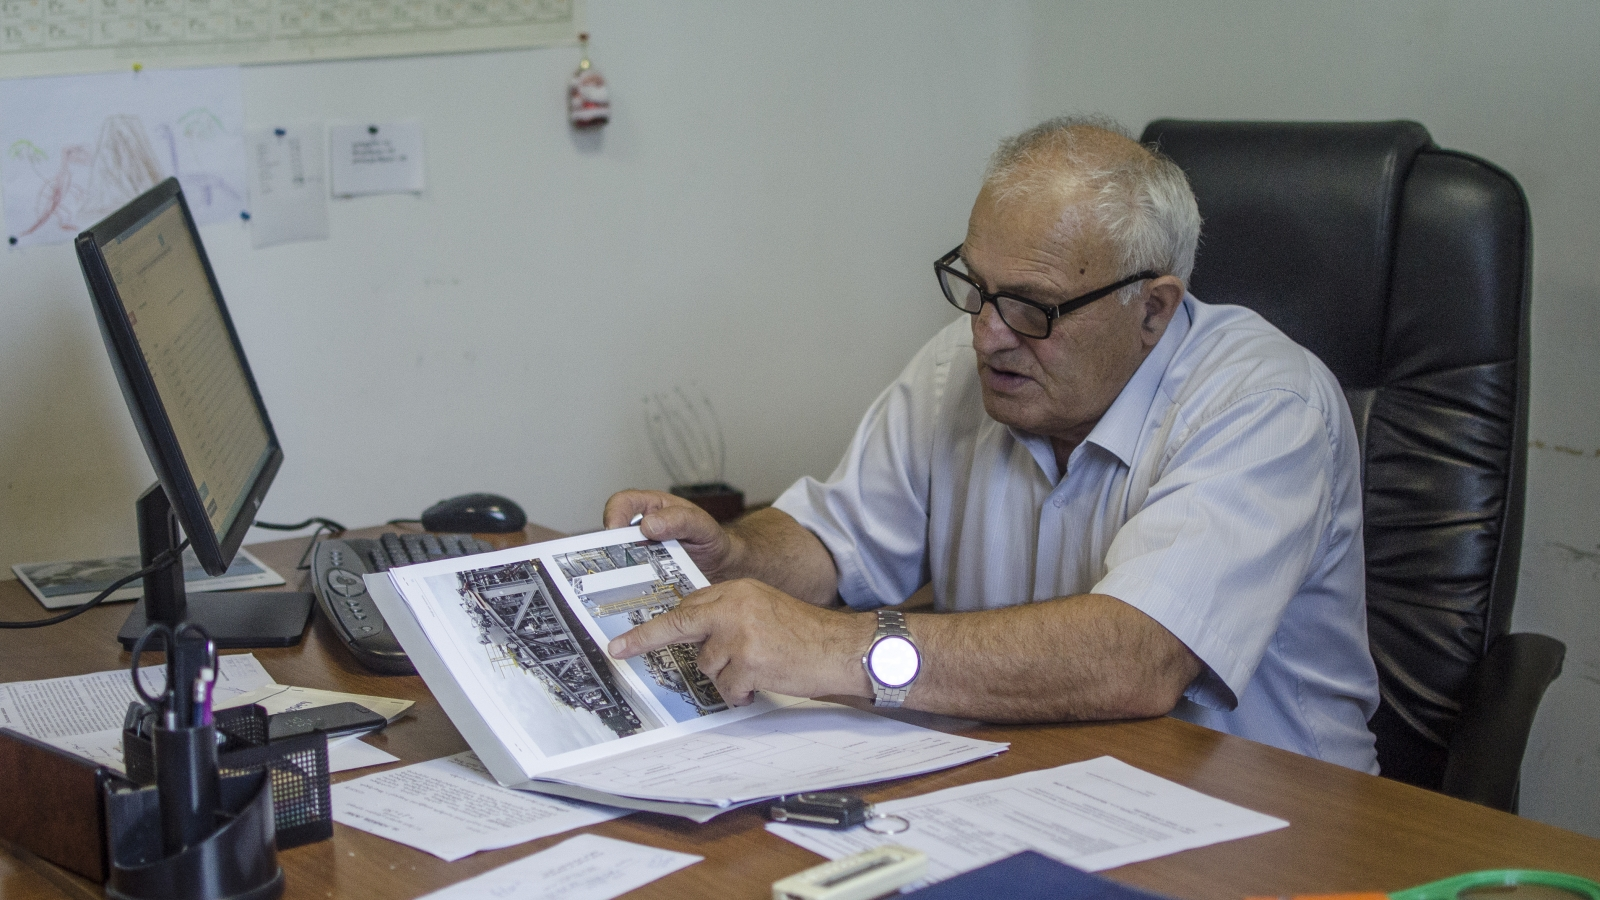 Gela Iakobashvili, the head of Azot's technical division has spent almost 40 years at the Azot factory